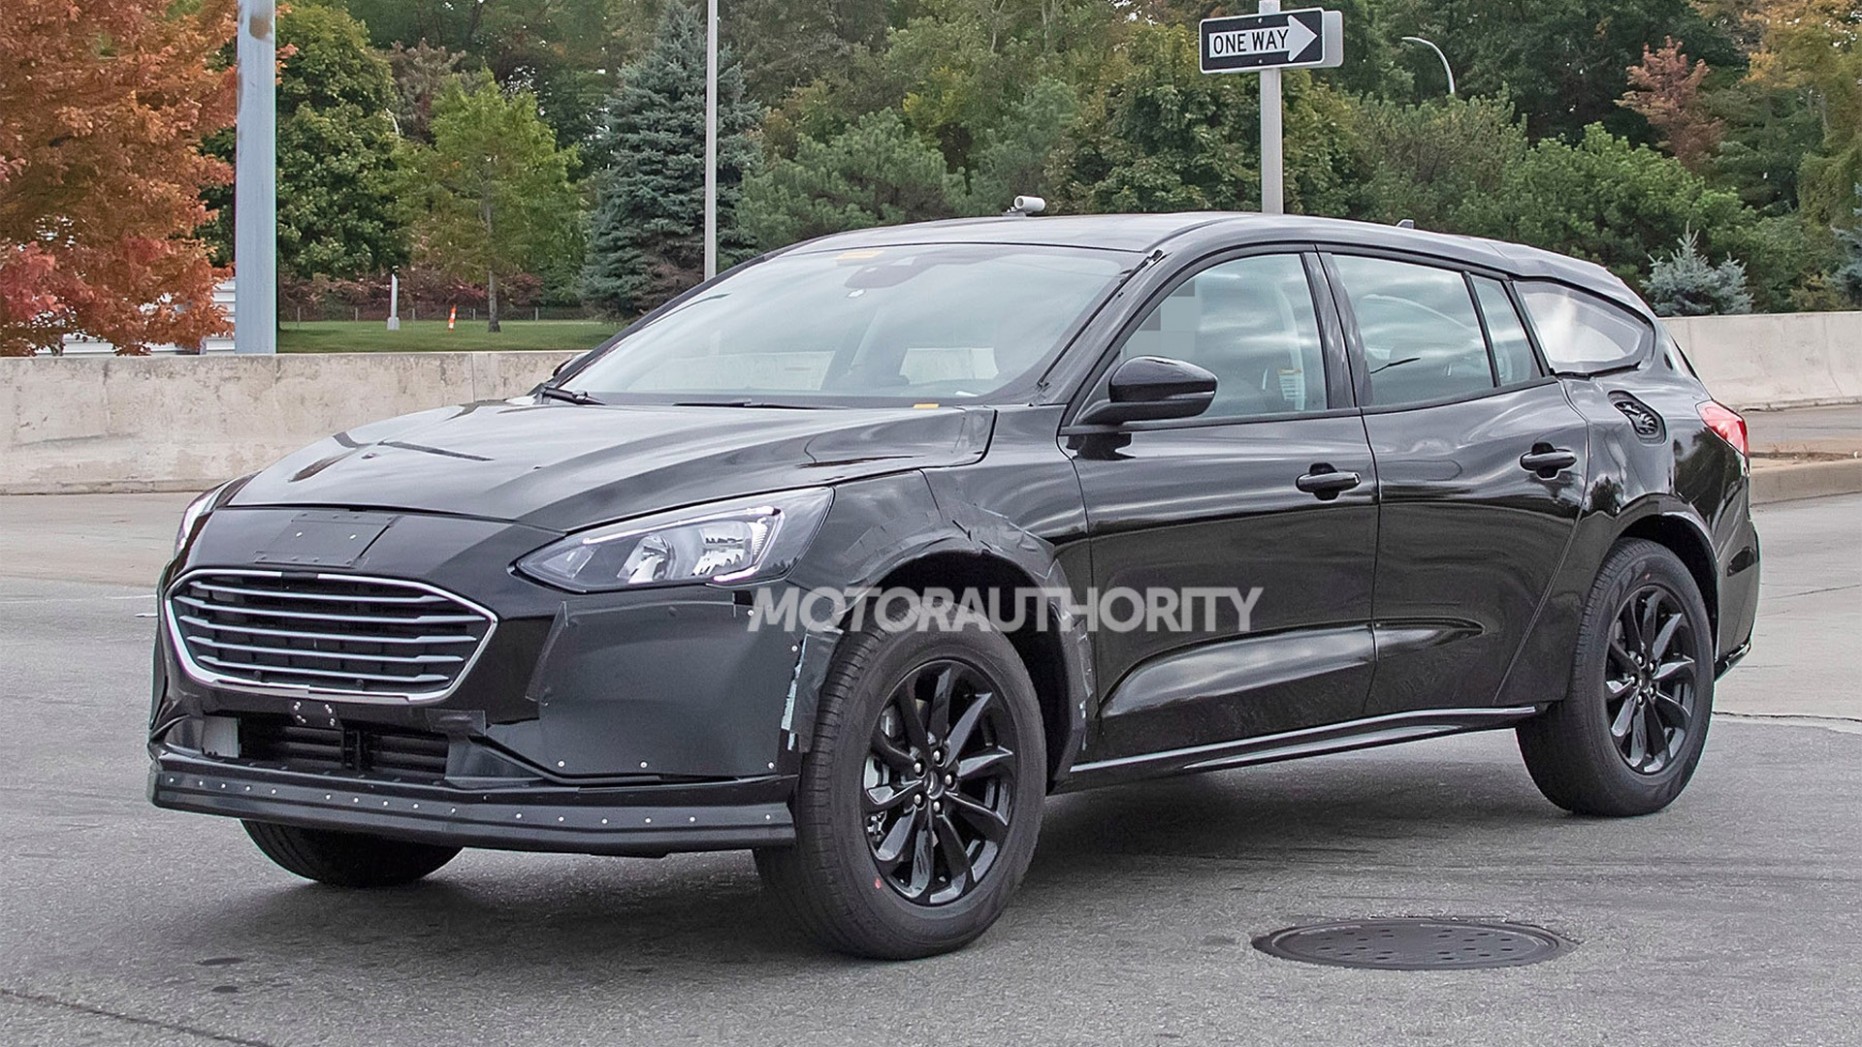 Exterior Spy Shots Ford Fusion